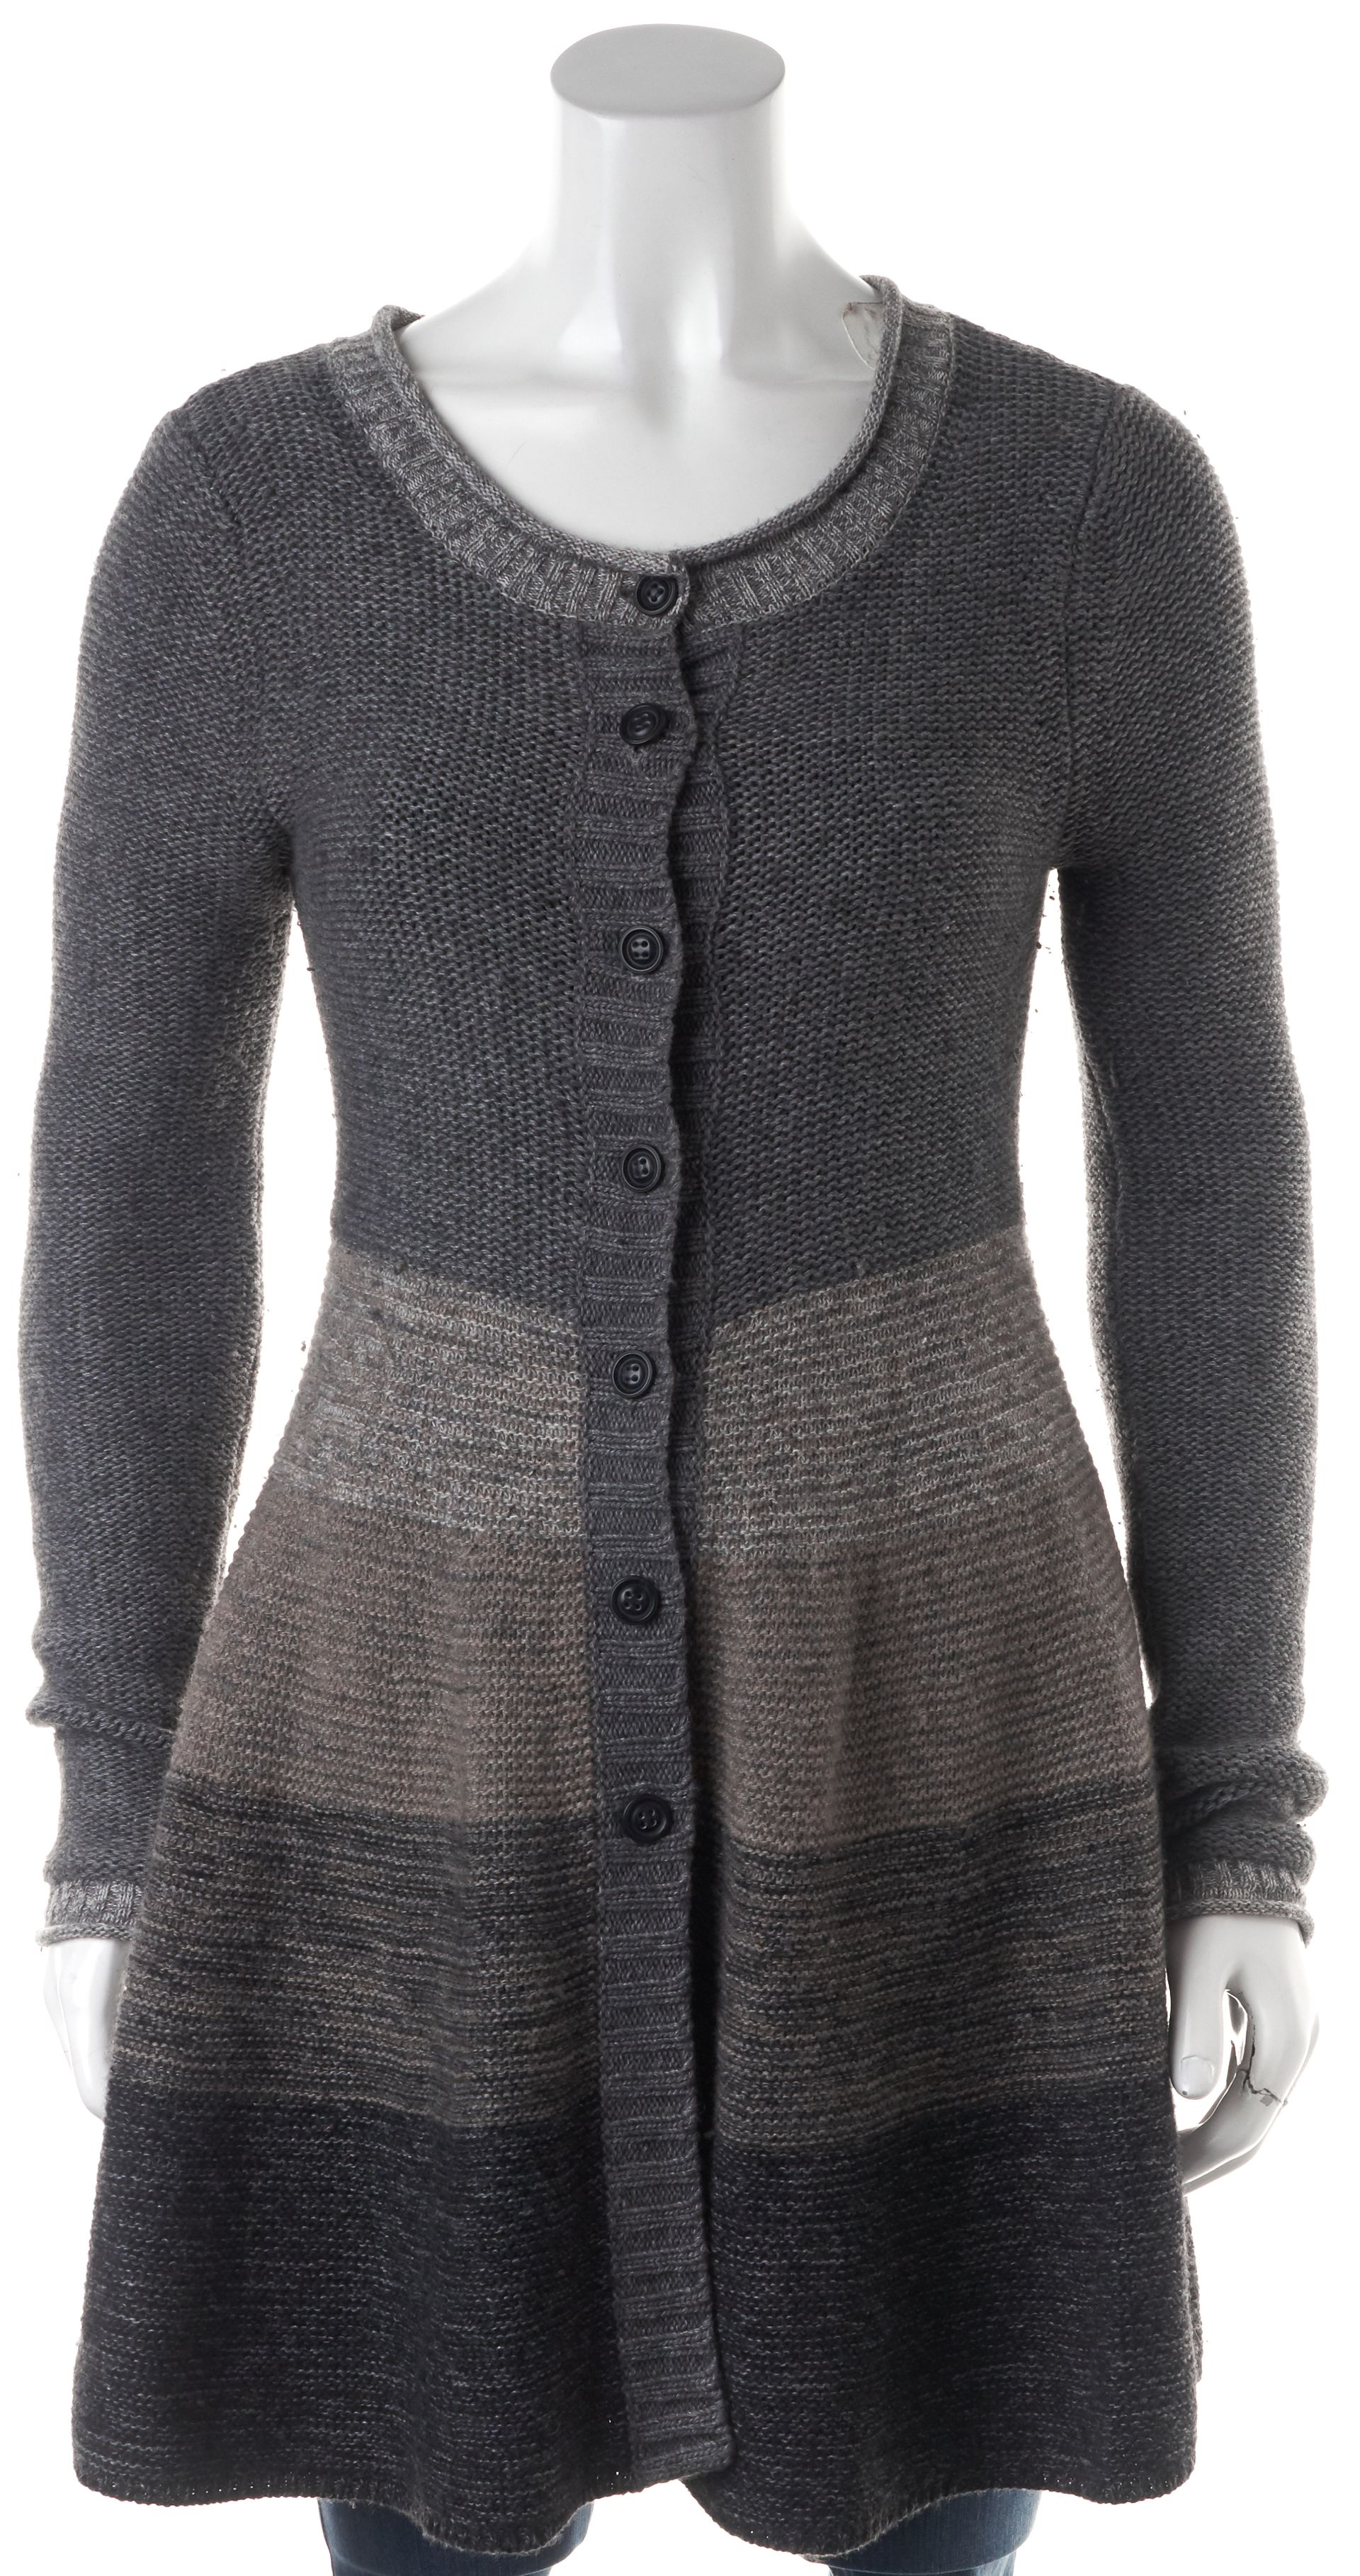 Autumn Cashmere Gray Brown Striped Button Down Cashmere Cardigan ...